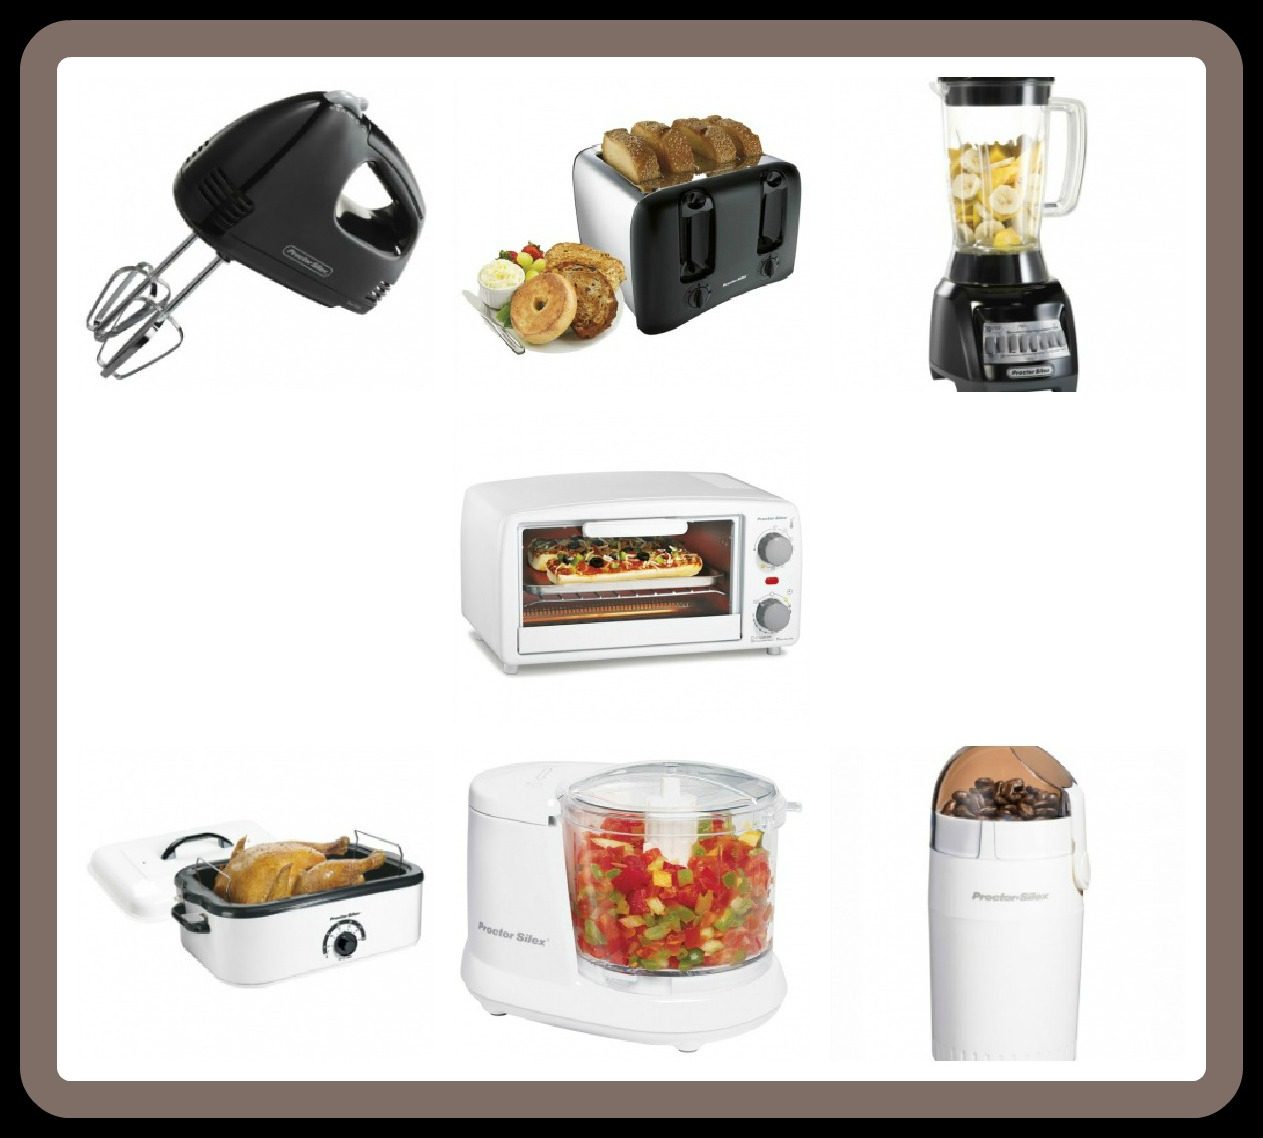 Totsy Small Kitchen Appliances starting at just 875